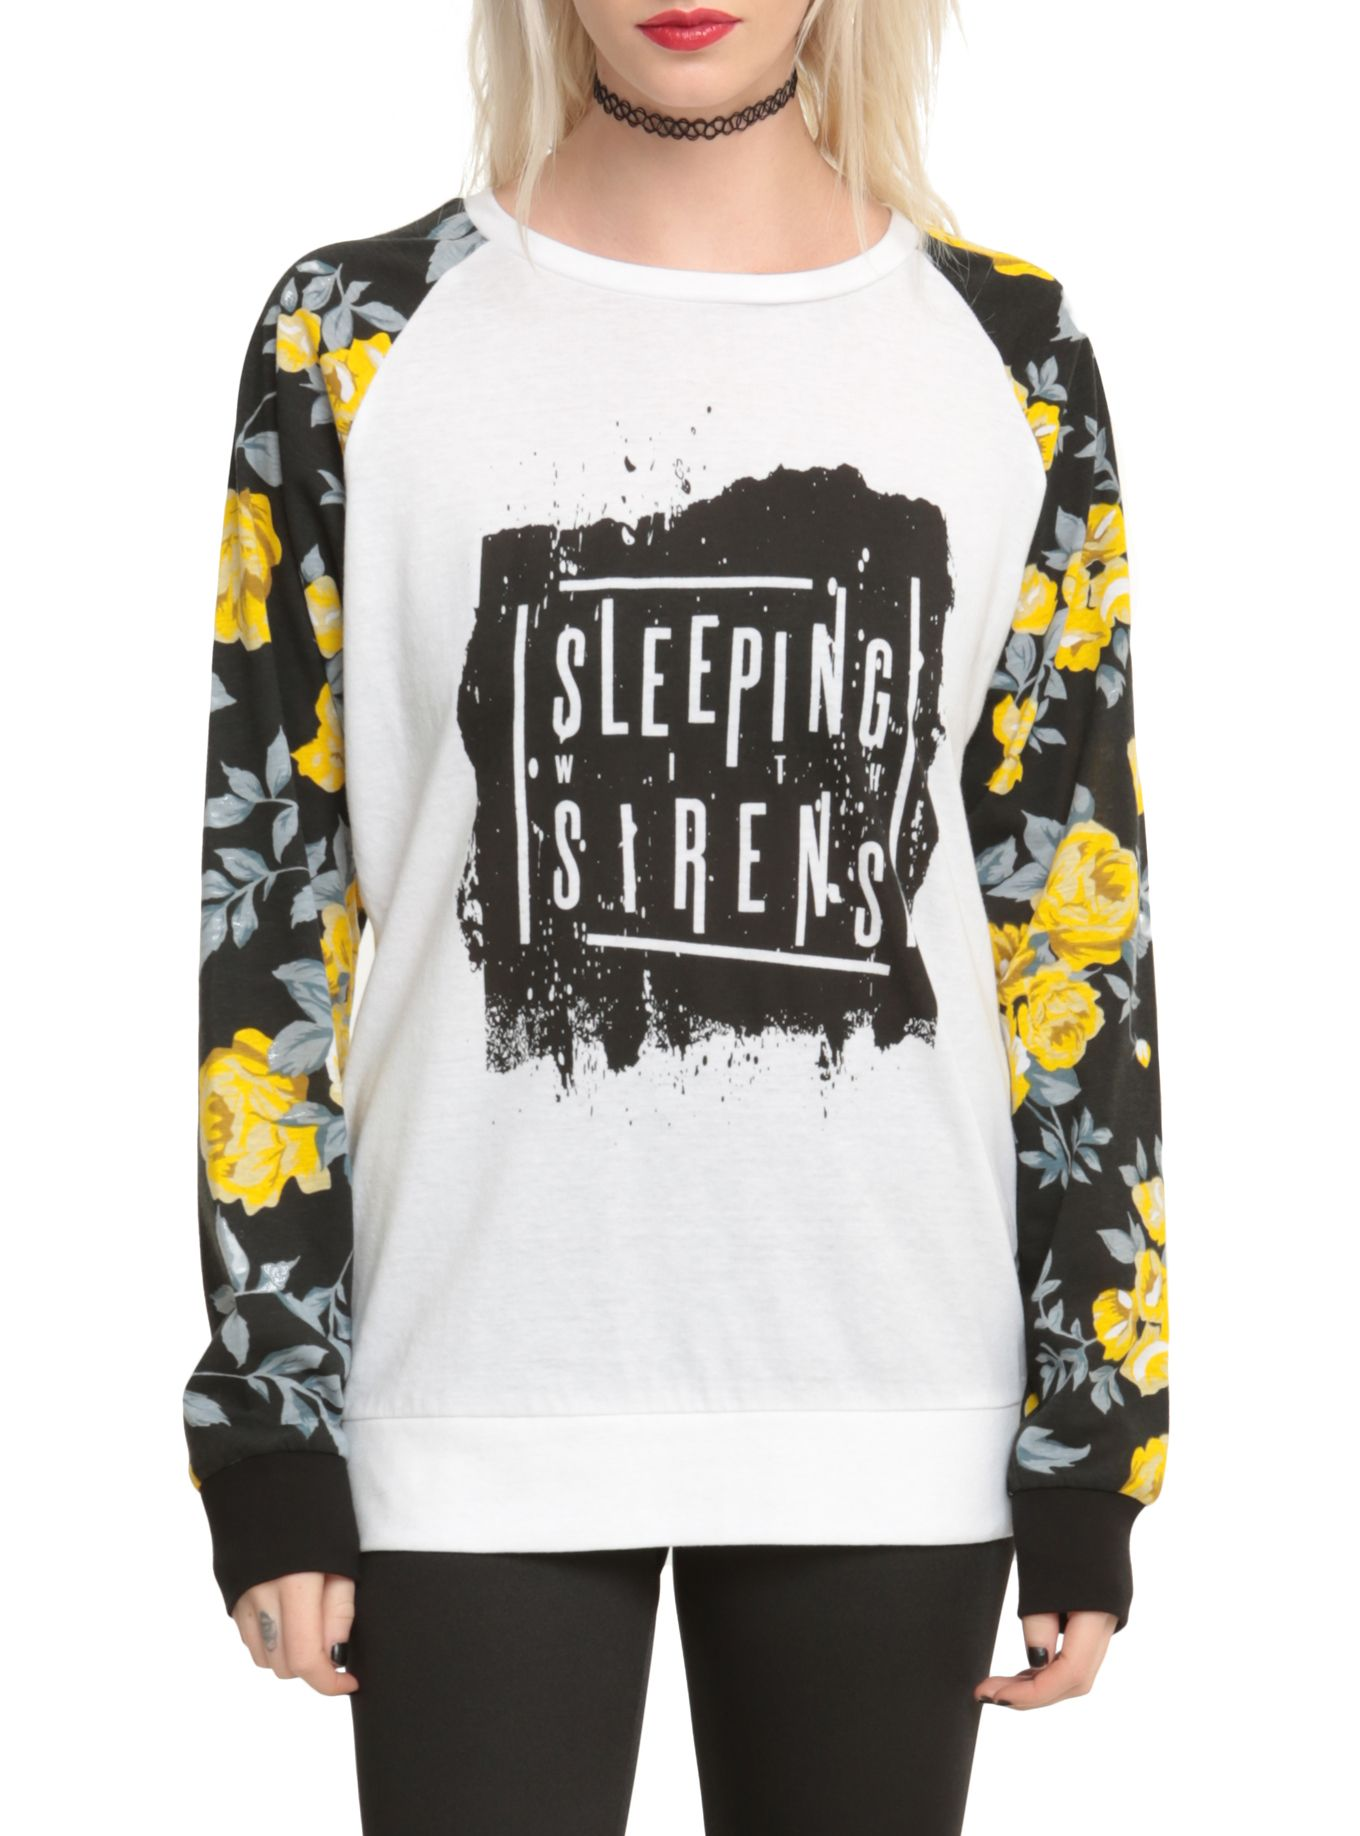 Sleeping With Sirens Floral filles manches Pull Top-7772